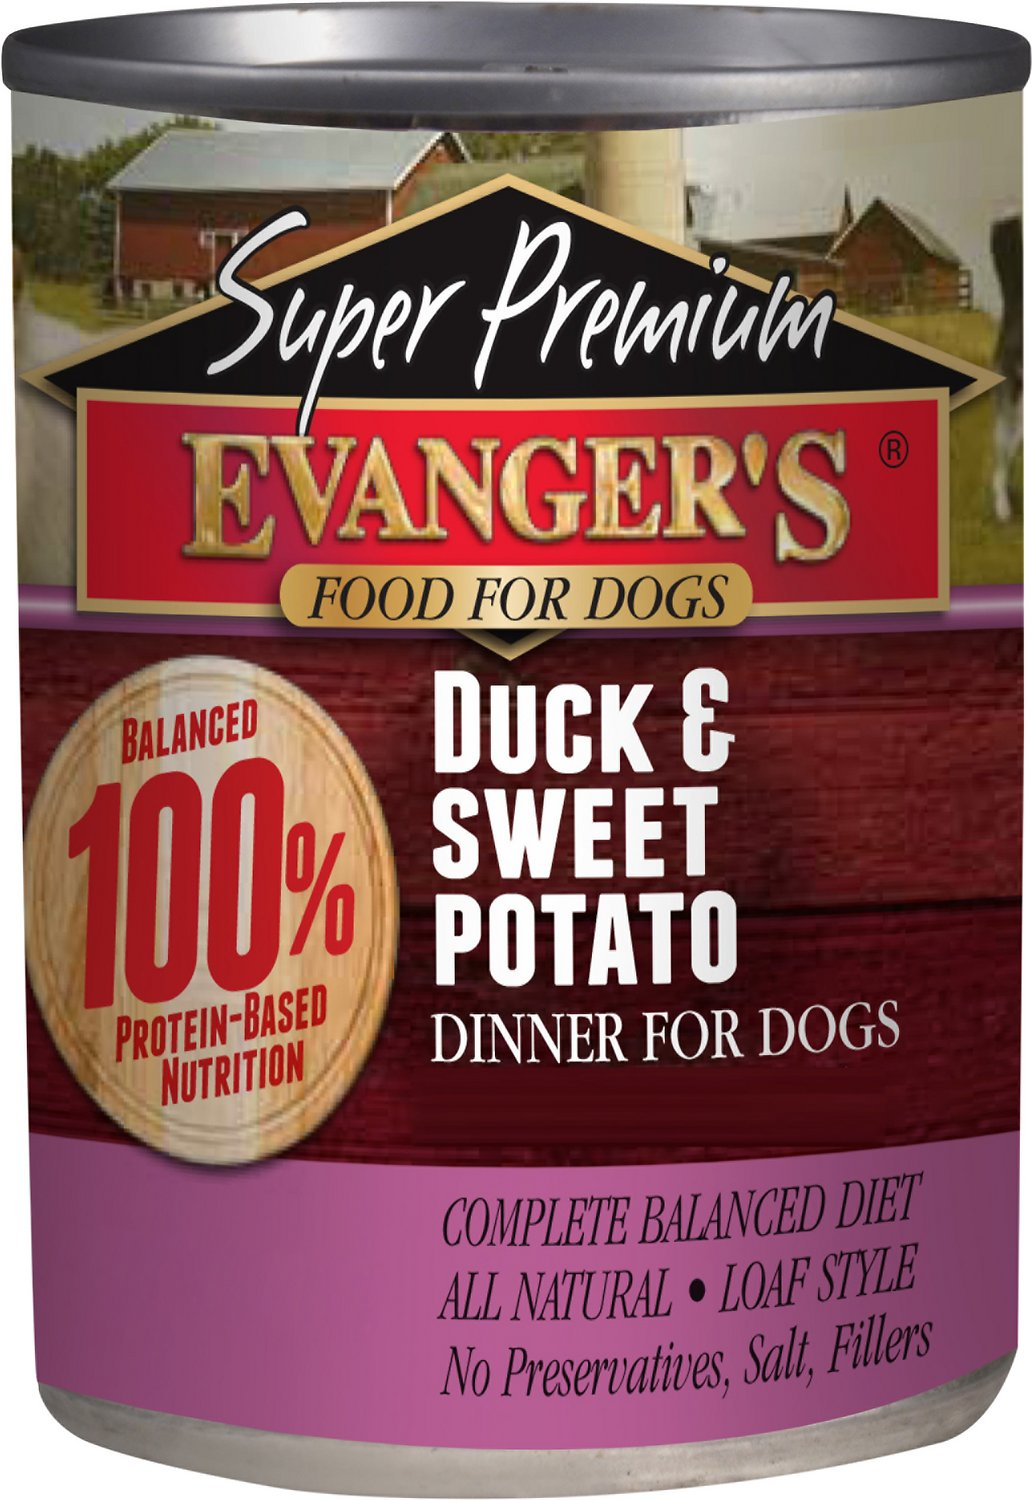 Evanger's Super Premium Duck & Sweet Potato Dinner Canned Dog Food, 12.8-oz